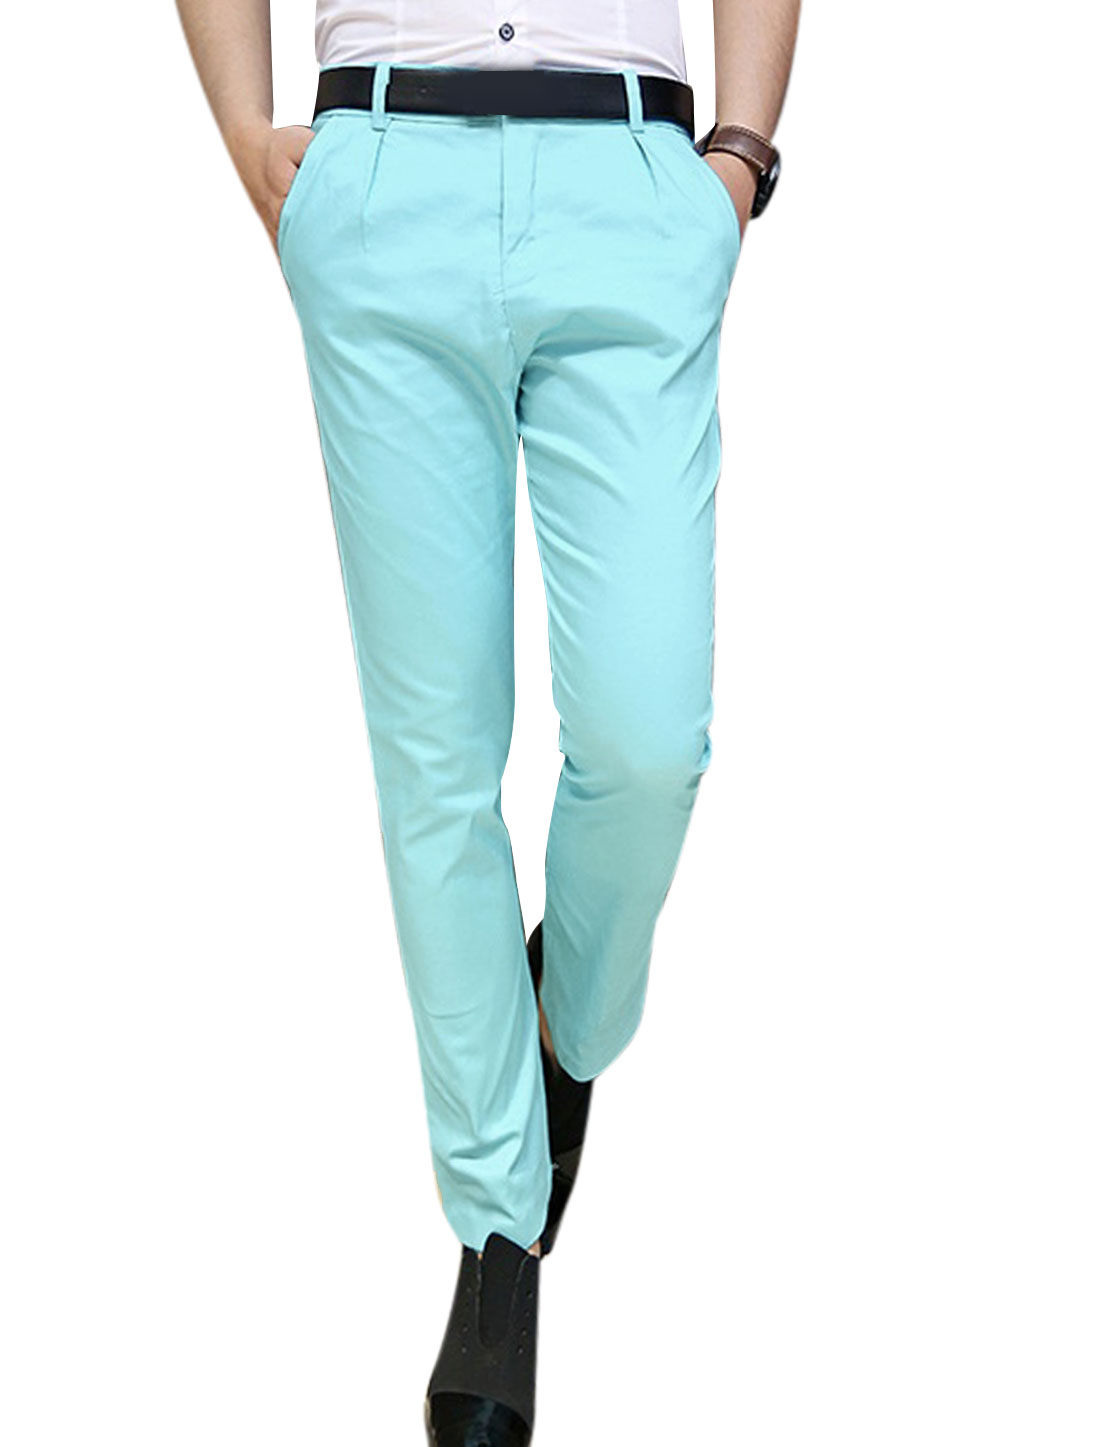 Man Hip Pockets Zip Fly Single Button Closure Cropped Pants Light Blue W30